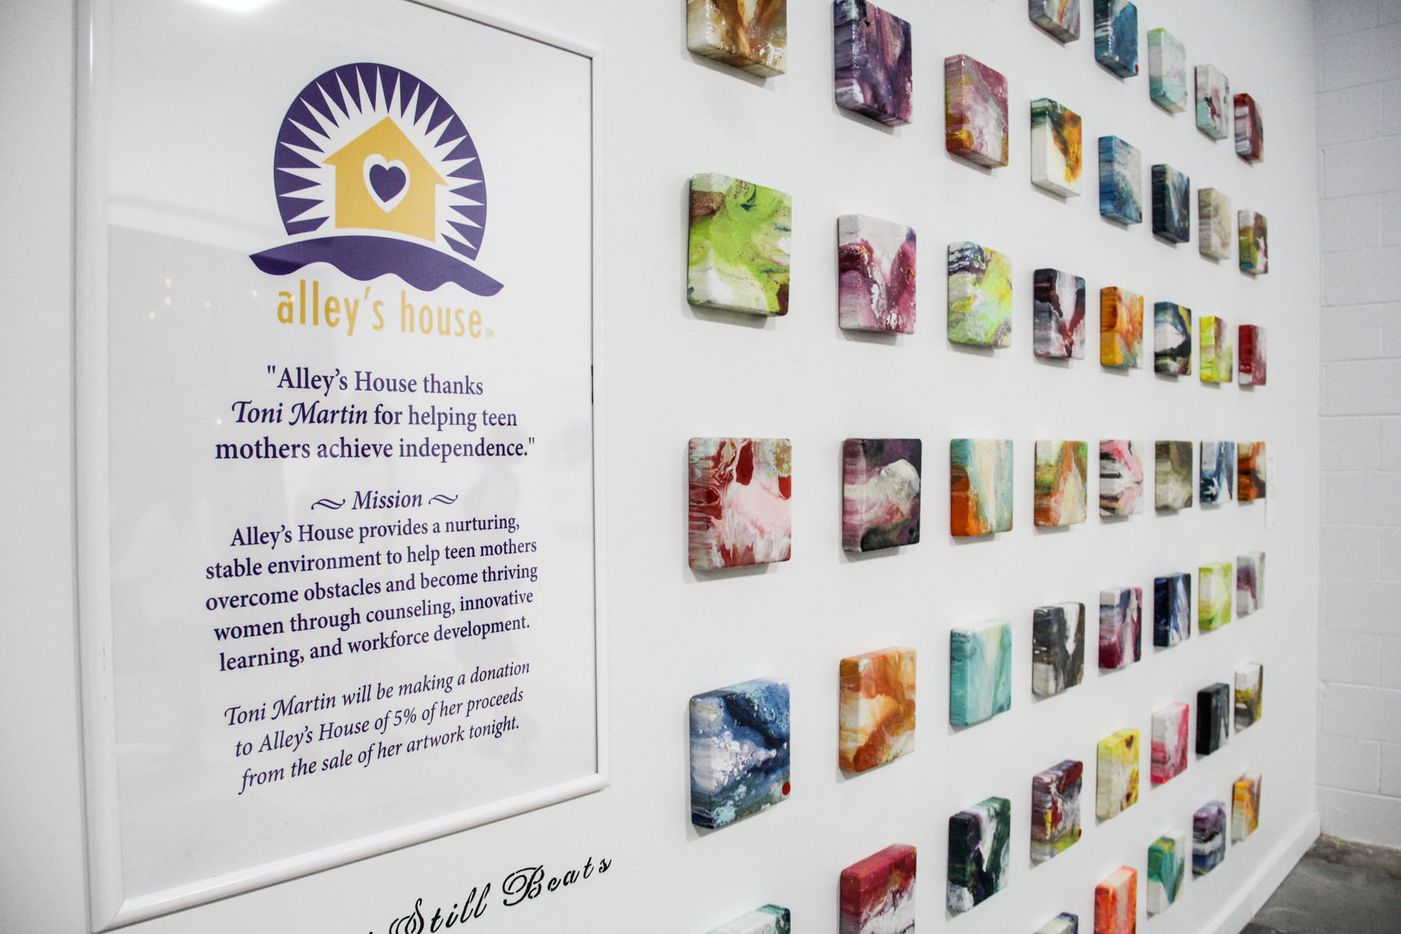 """Toni Martin's """"My Heart Still Beats"""" collection at her exhibit. The 7 x 7 inch squares are painted with abstract hearts. """"Whether your heart has been trampled on, or if your heart is beating loud, it is beating to the color of your soul,"""" Martin said."""